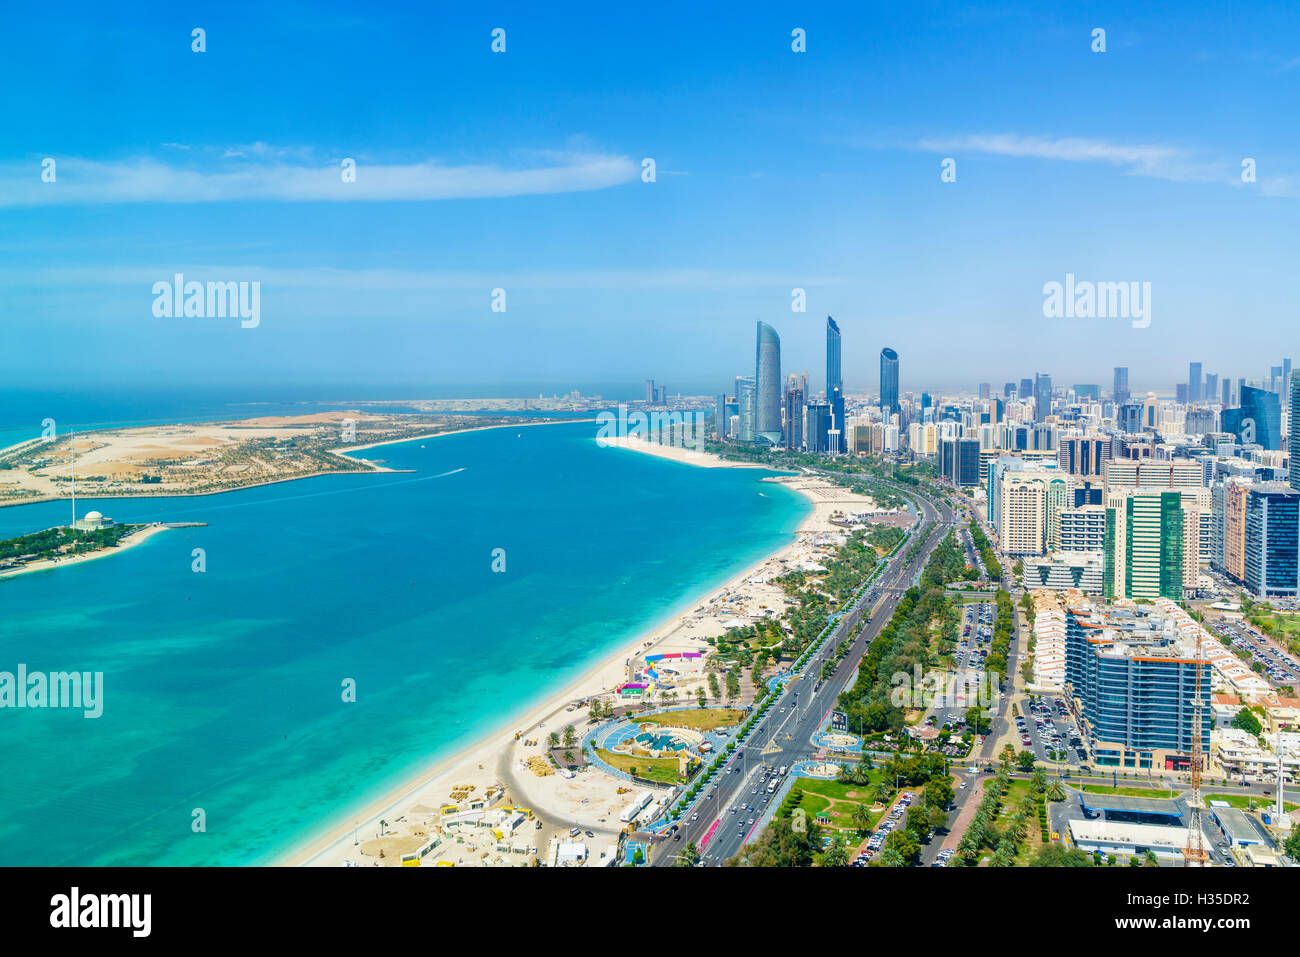 Skyline and Corniche, Al Markaziyah district, Abu Dhabi, United Arab Emirates, Middle East - Stock Image